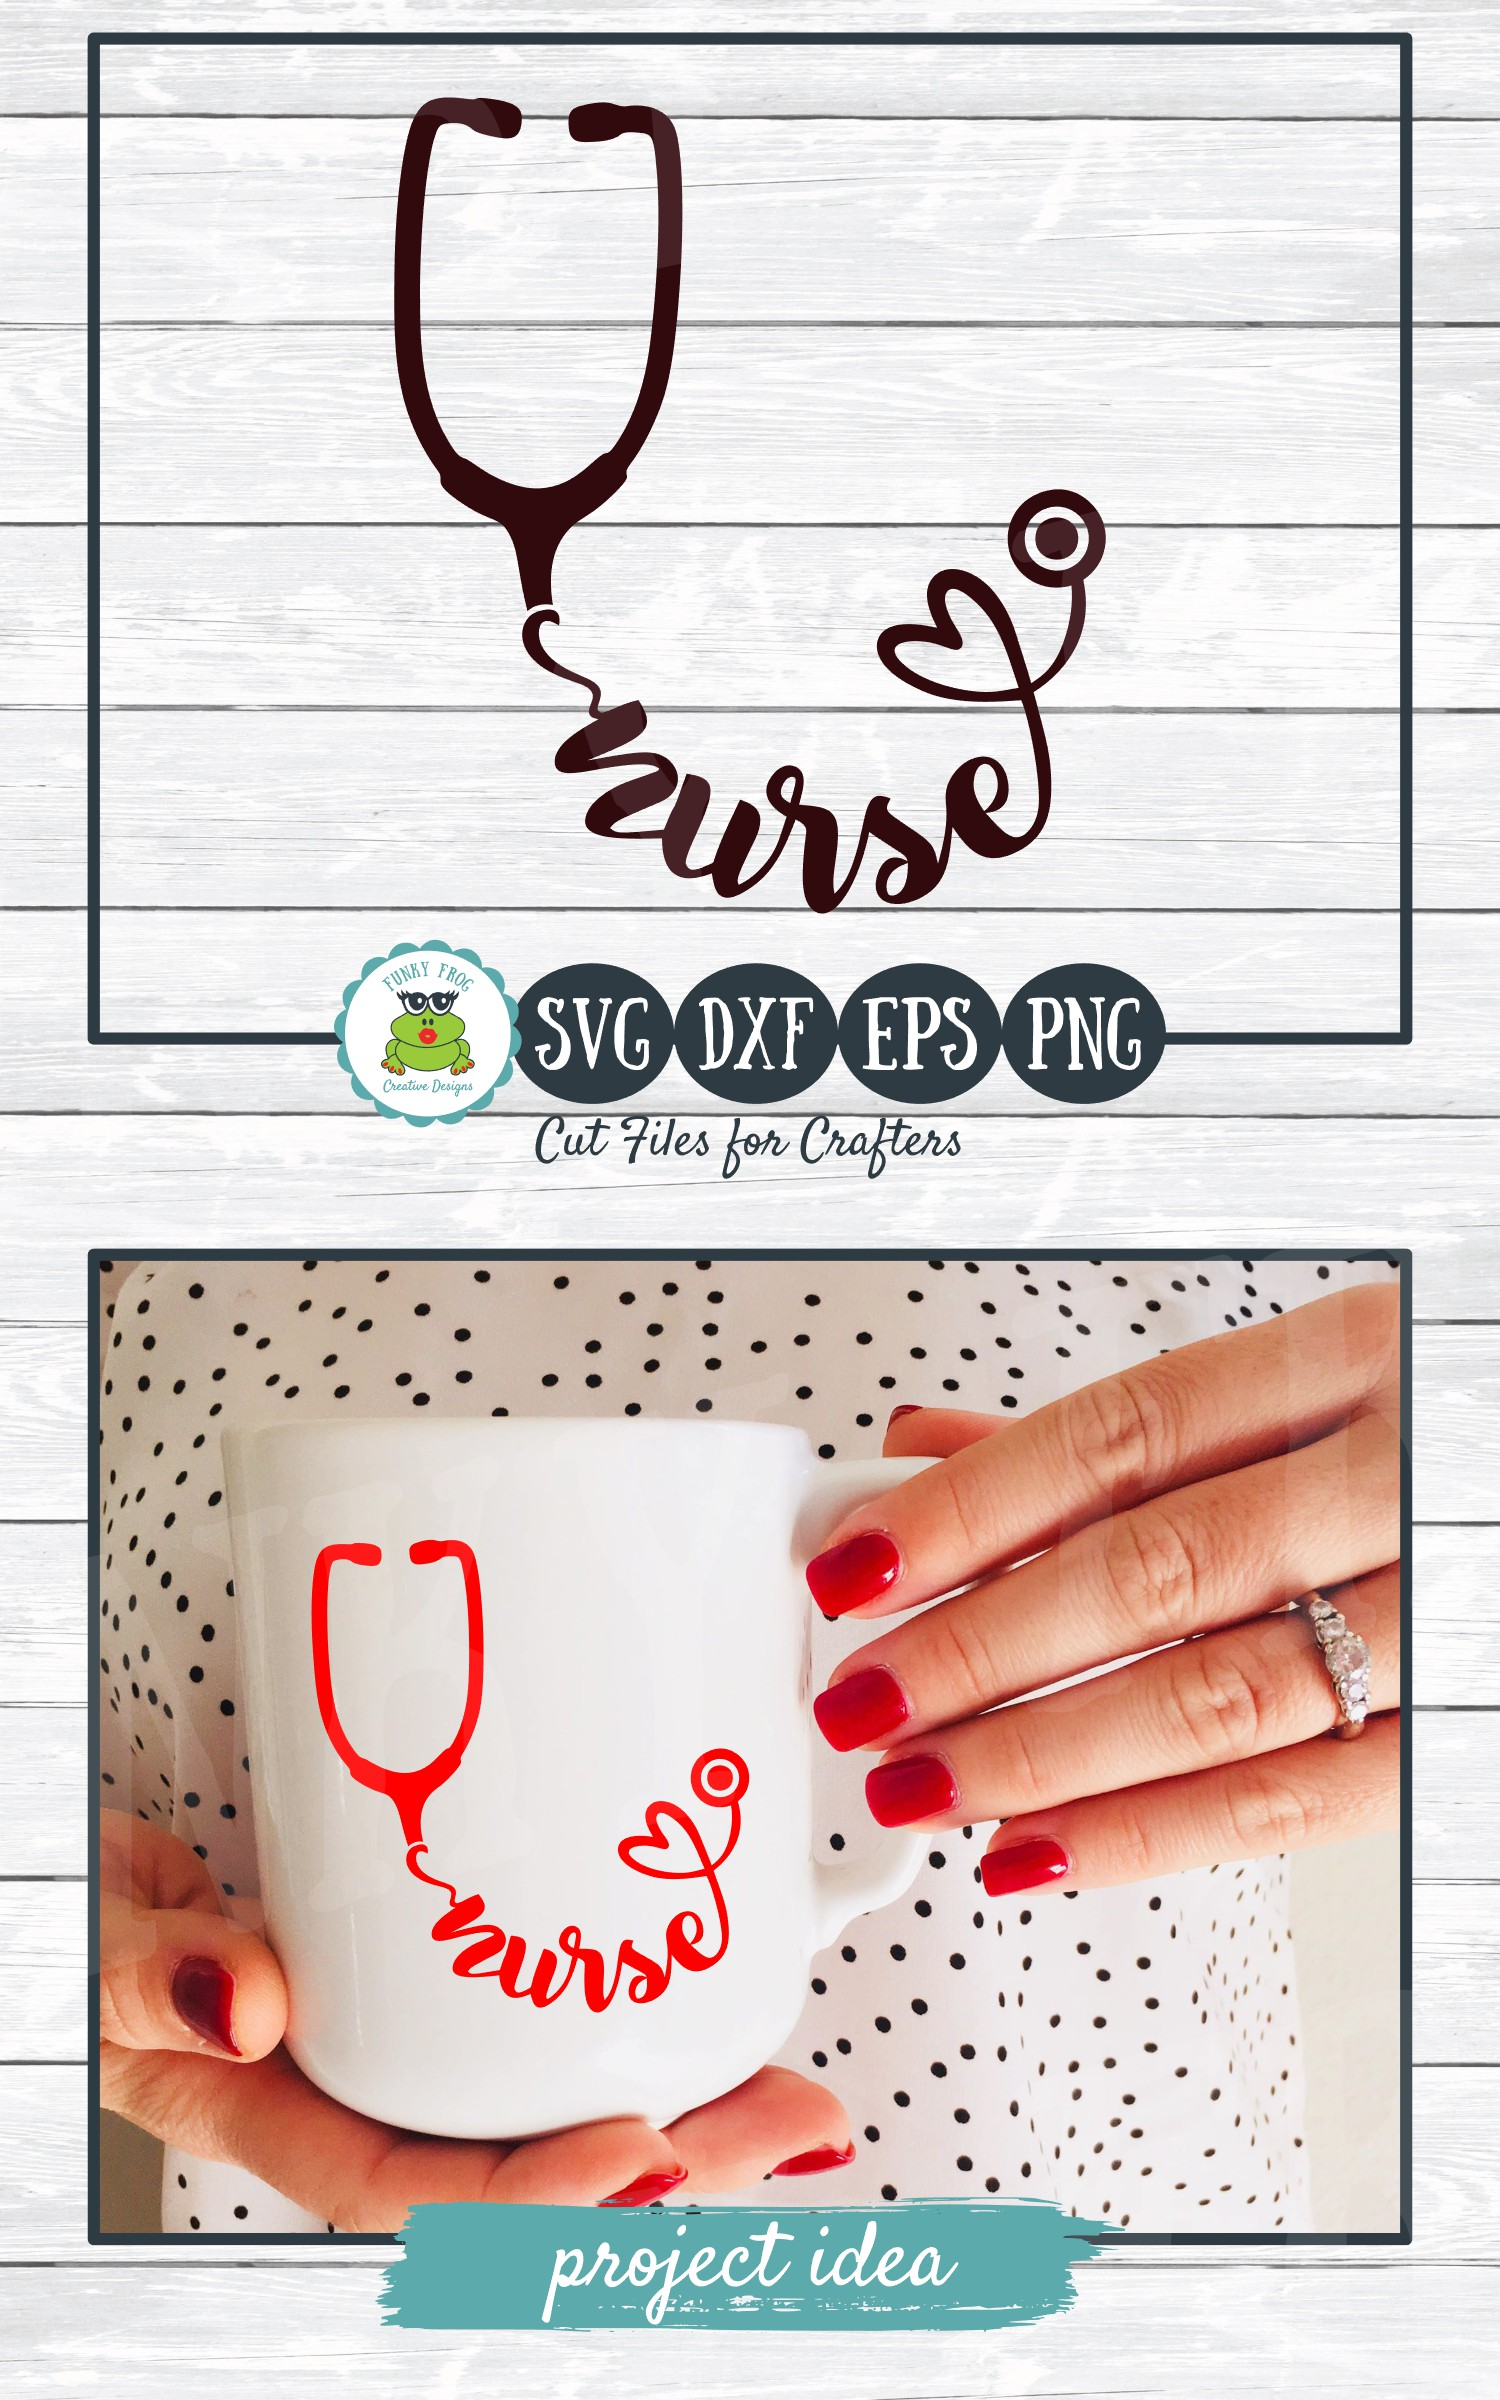 Nurse Stethoscope SVG Cut File for Crafters example image 4